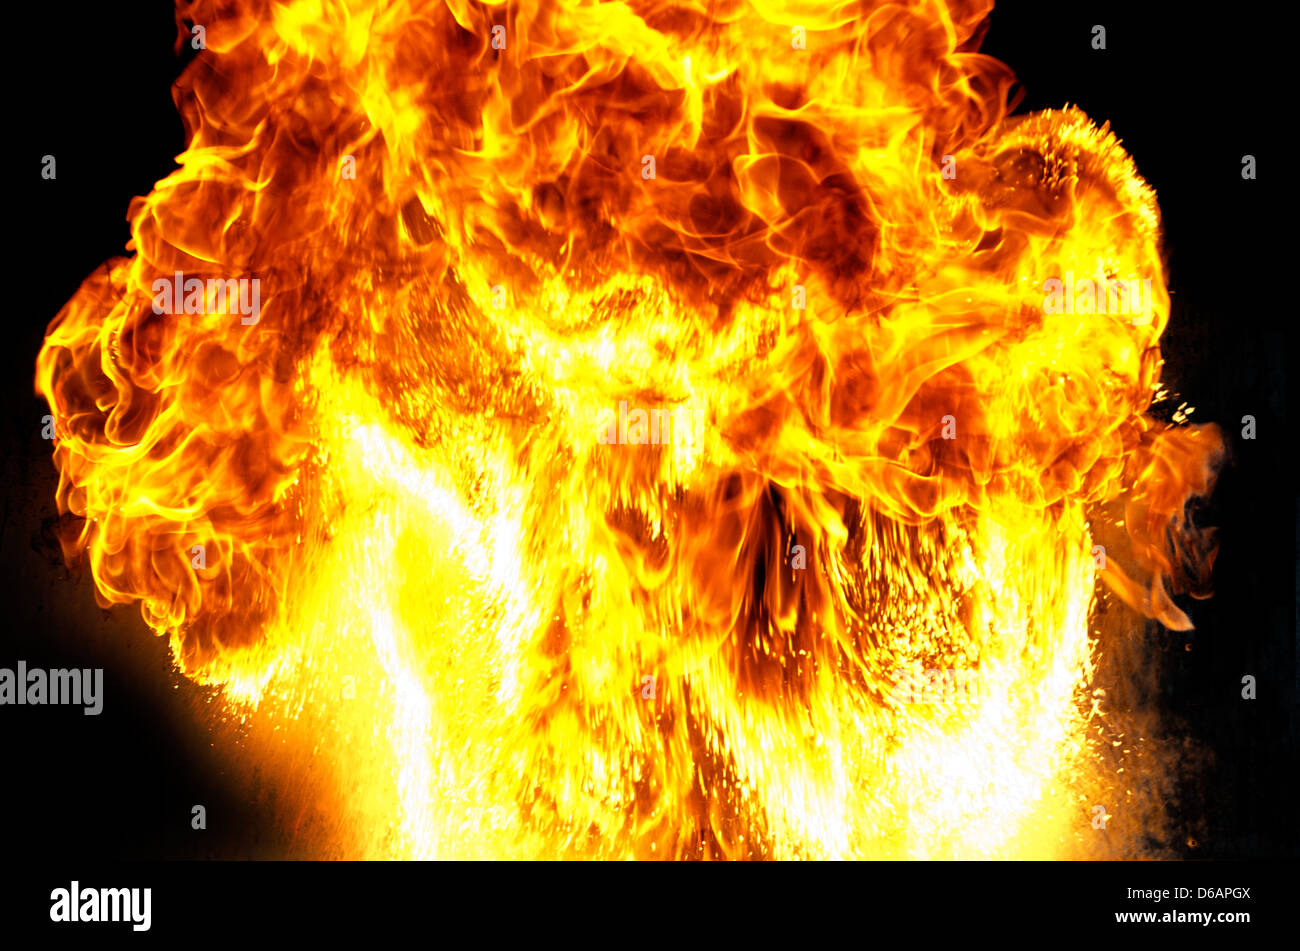 Massive mushroom shaped fire explosion with big flames. - Stock Image